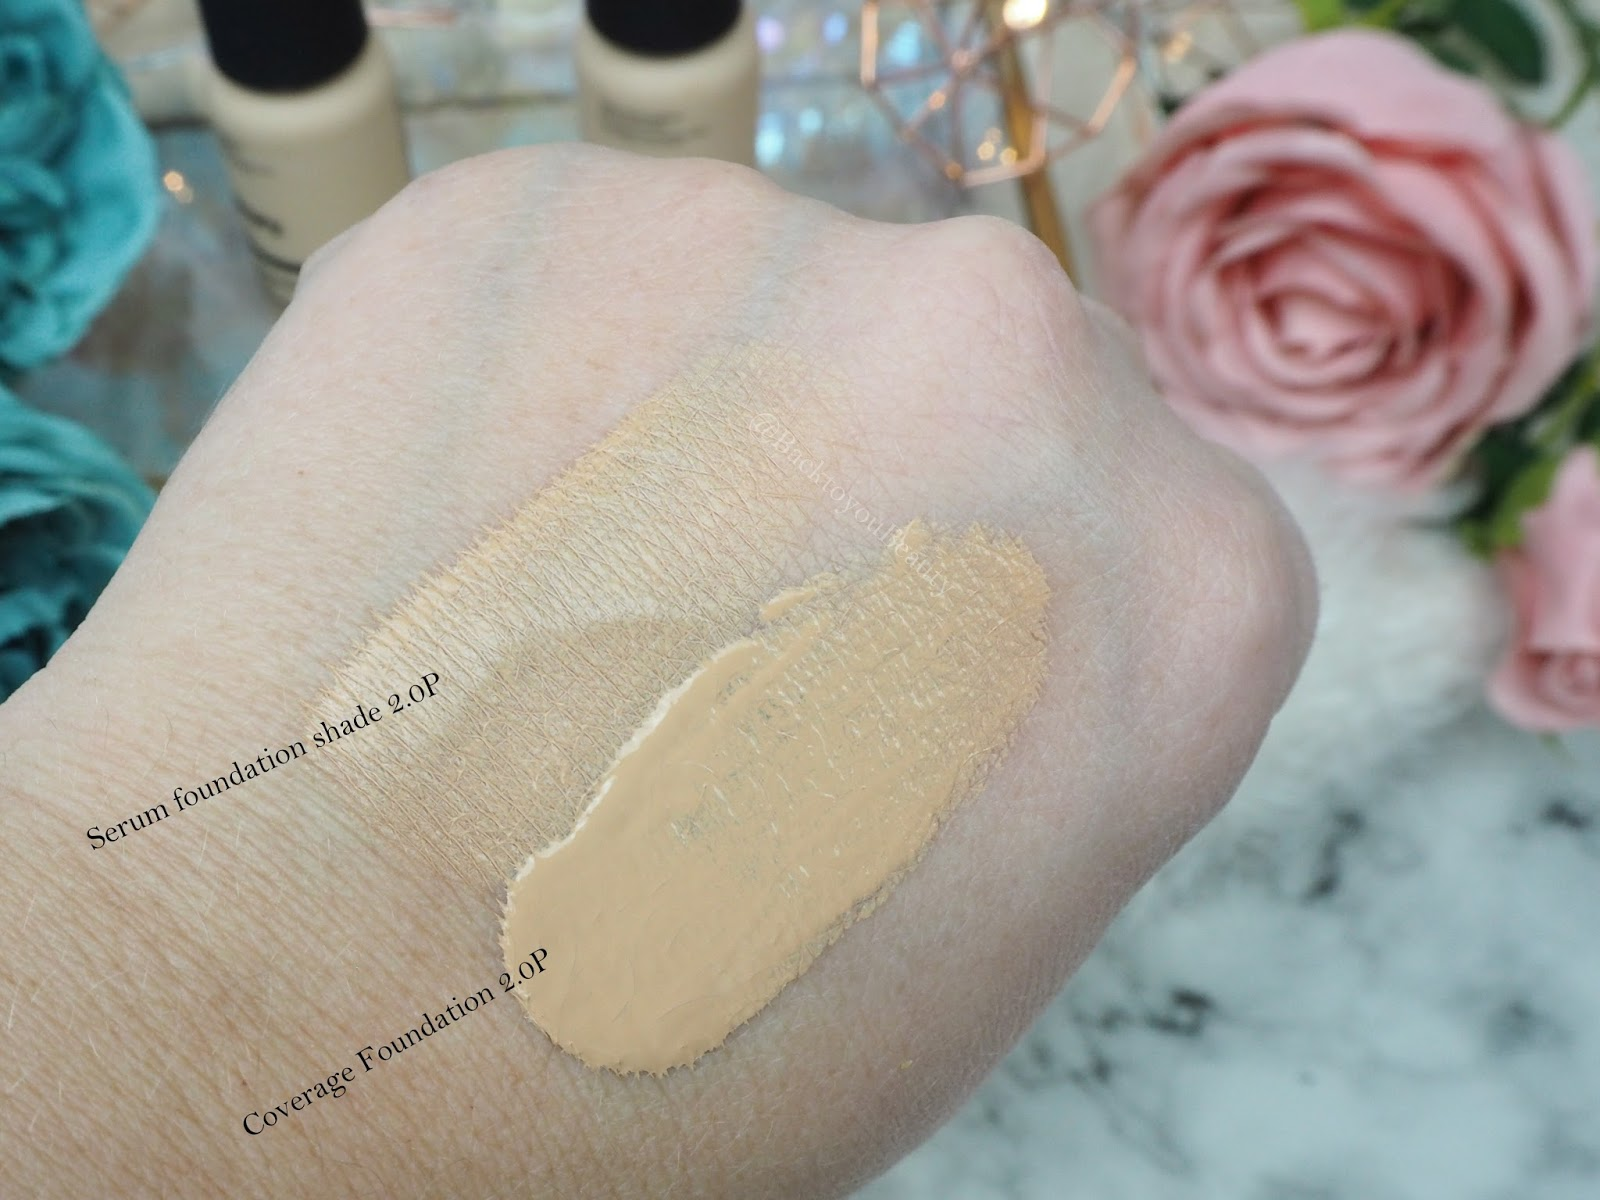 The Ordinary Serum and Coverage foundation swatches